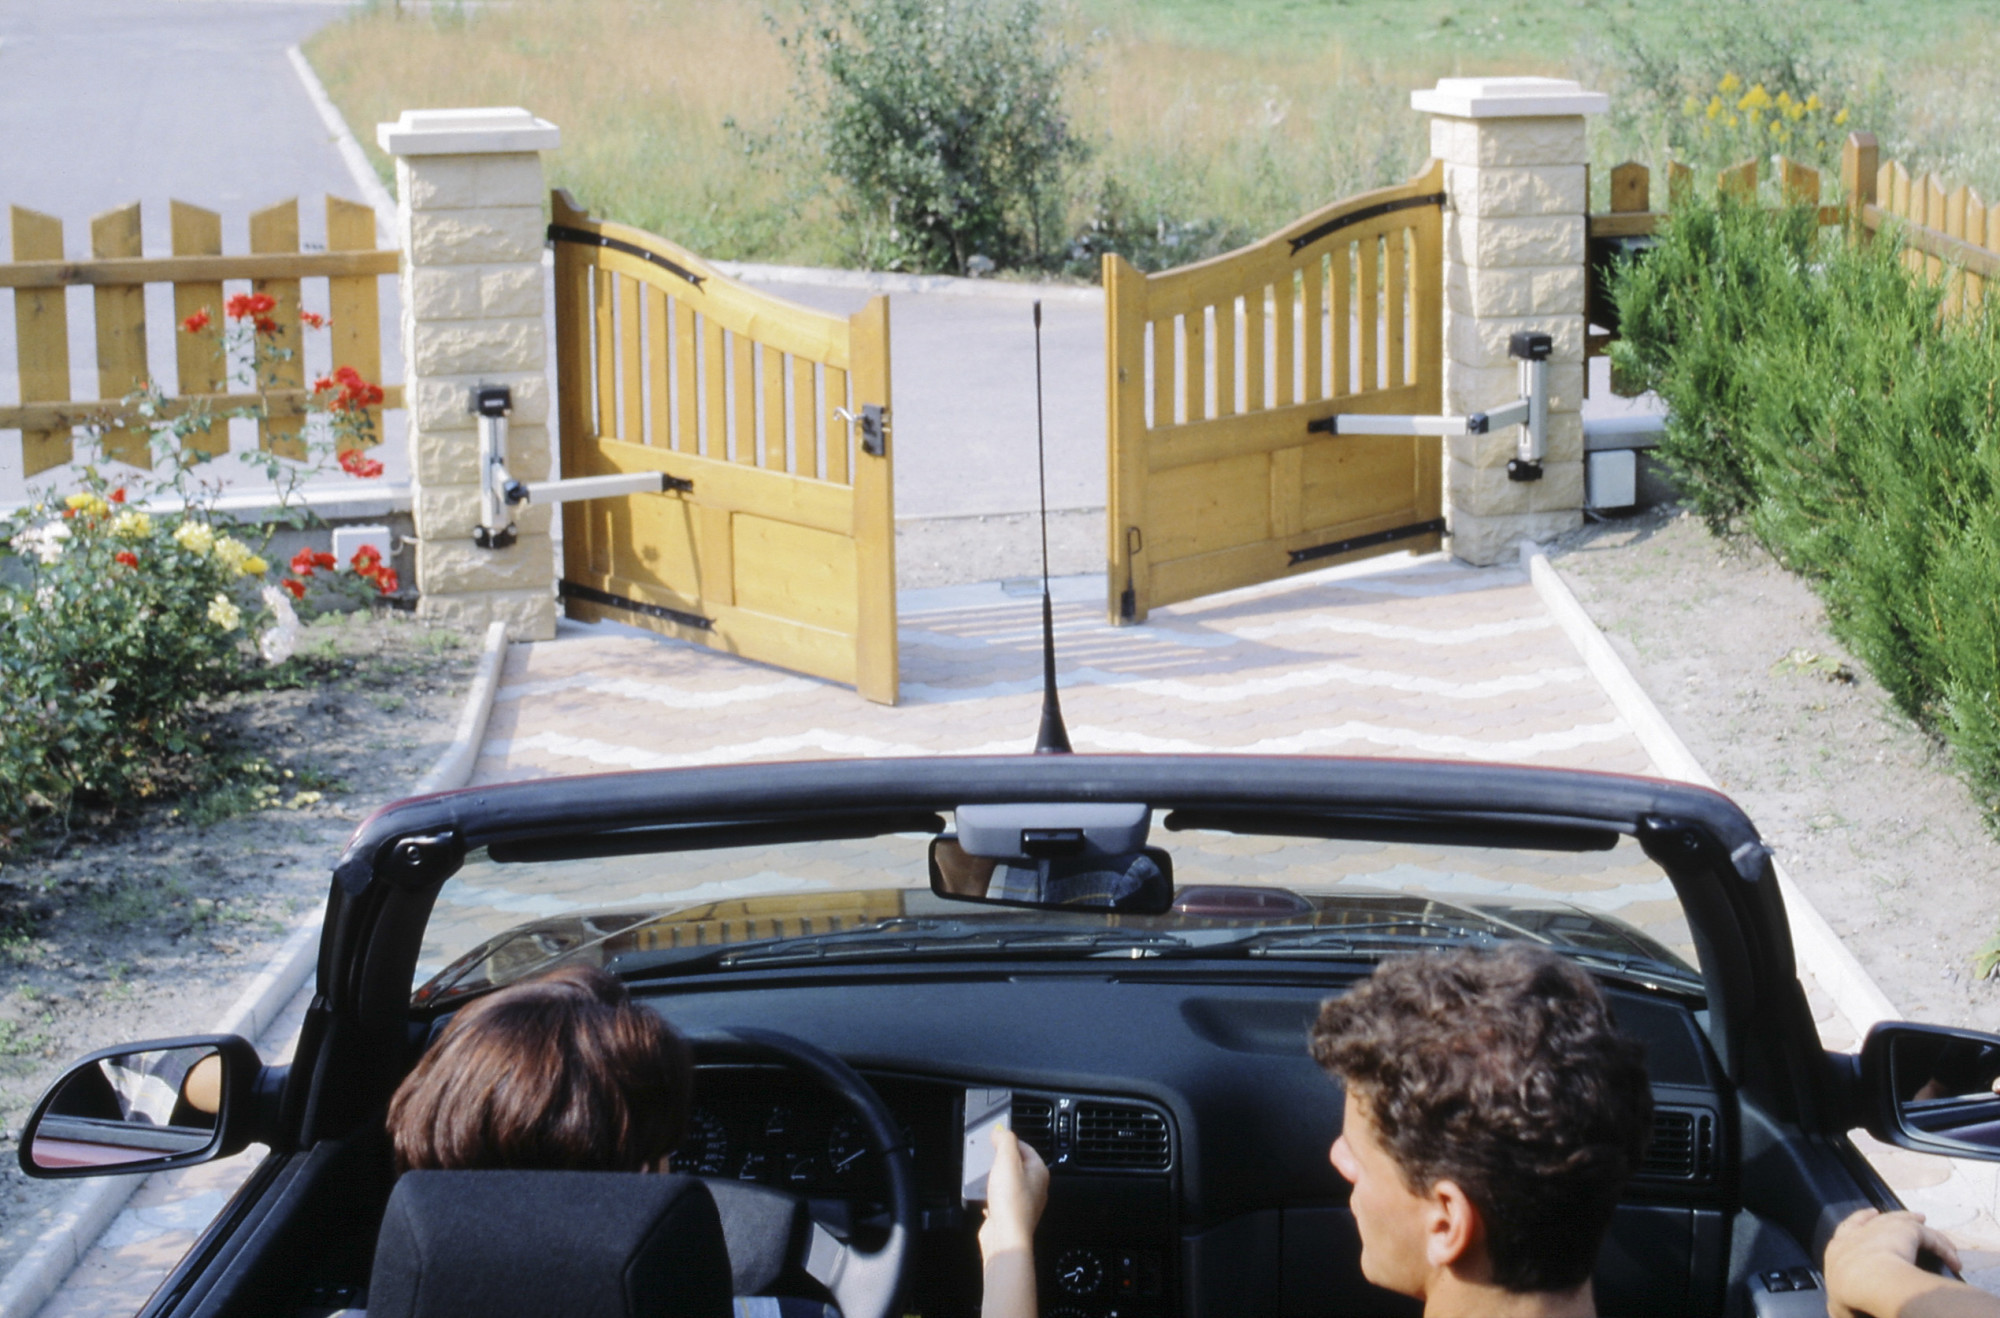 7 Driveway Gate Designs and Inspiration for Your New Custom Driveway